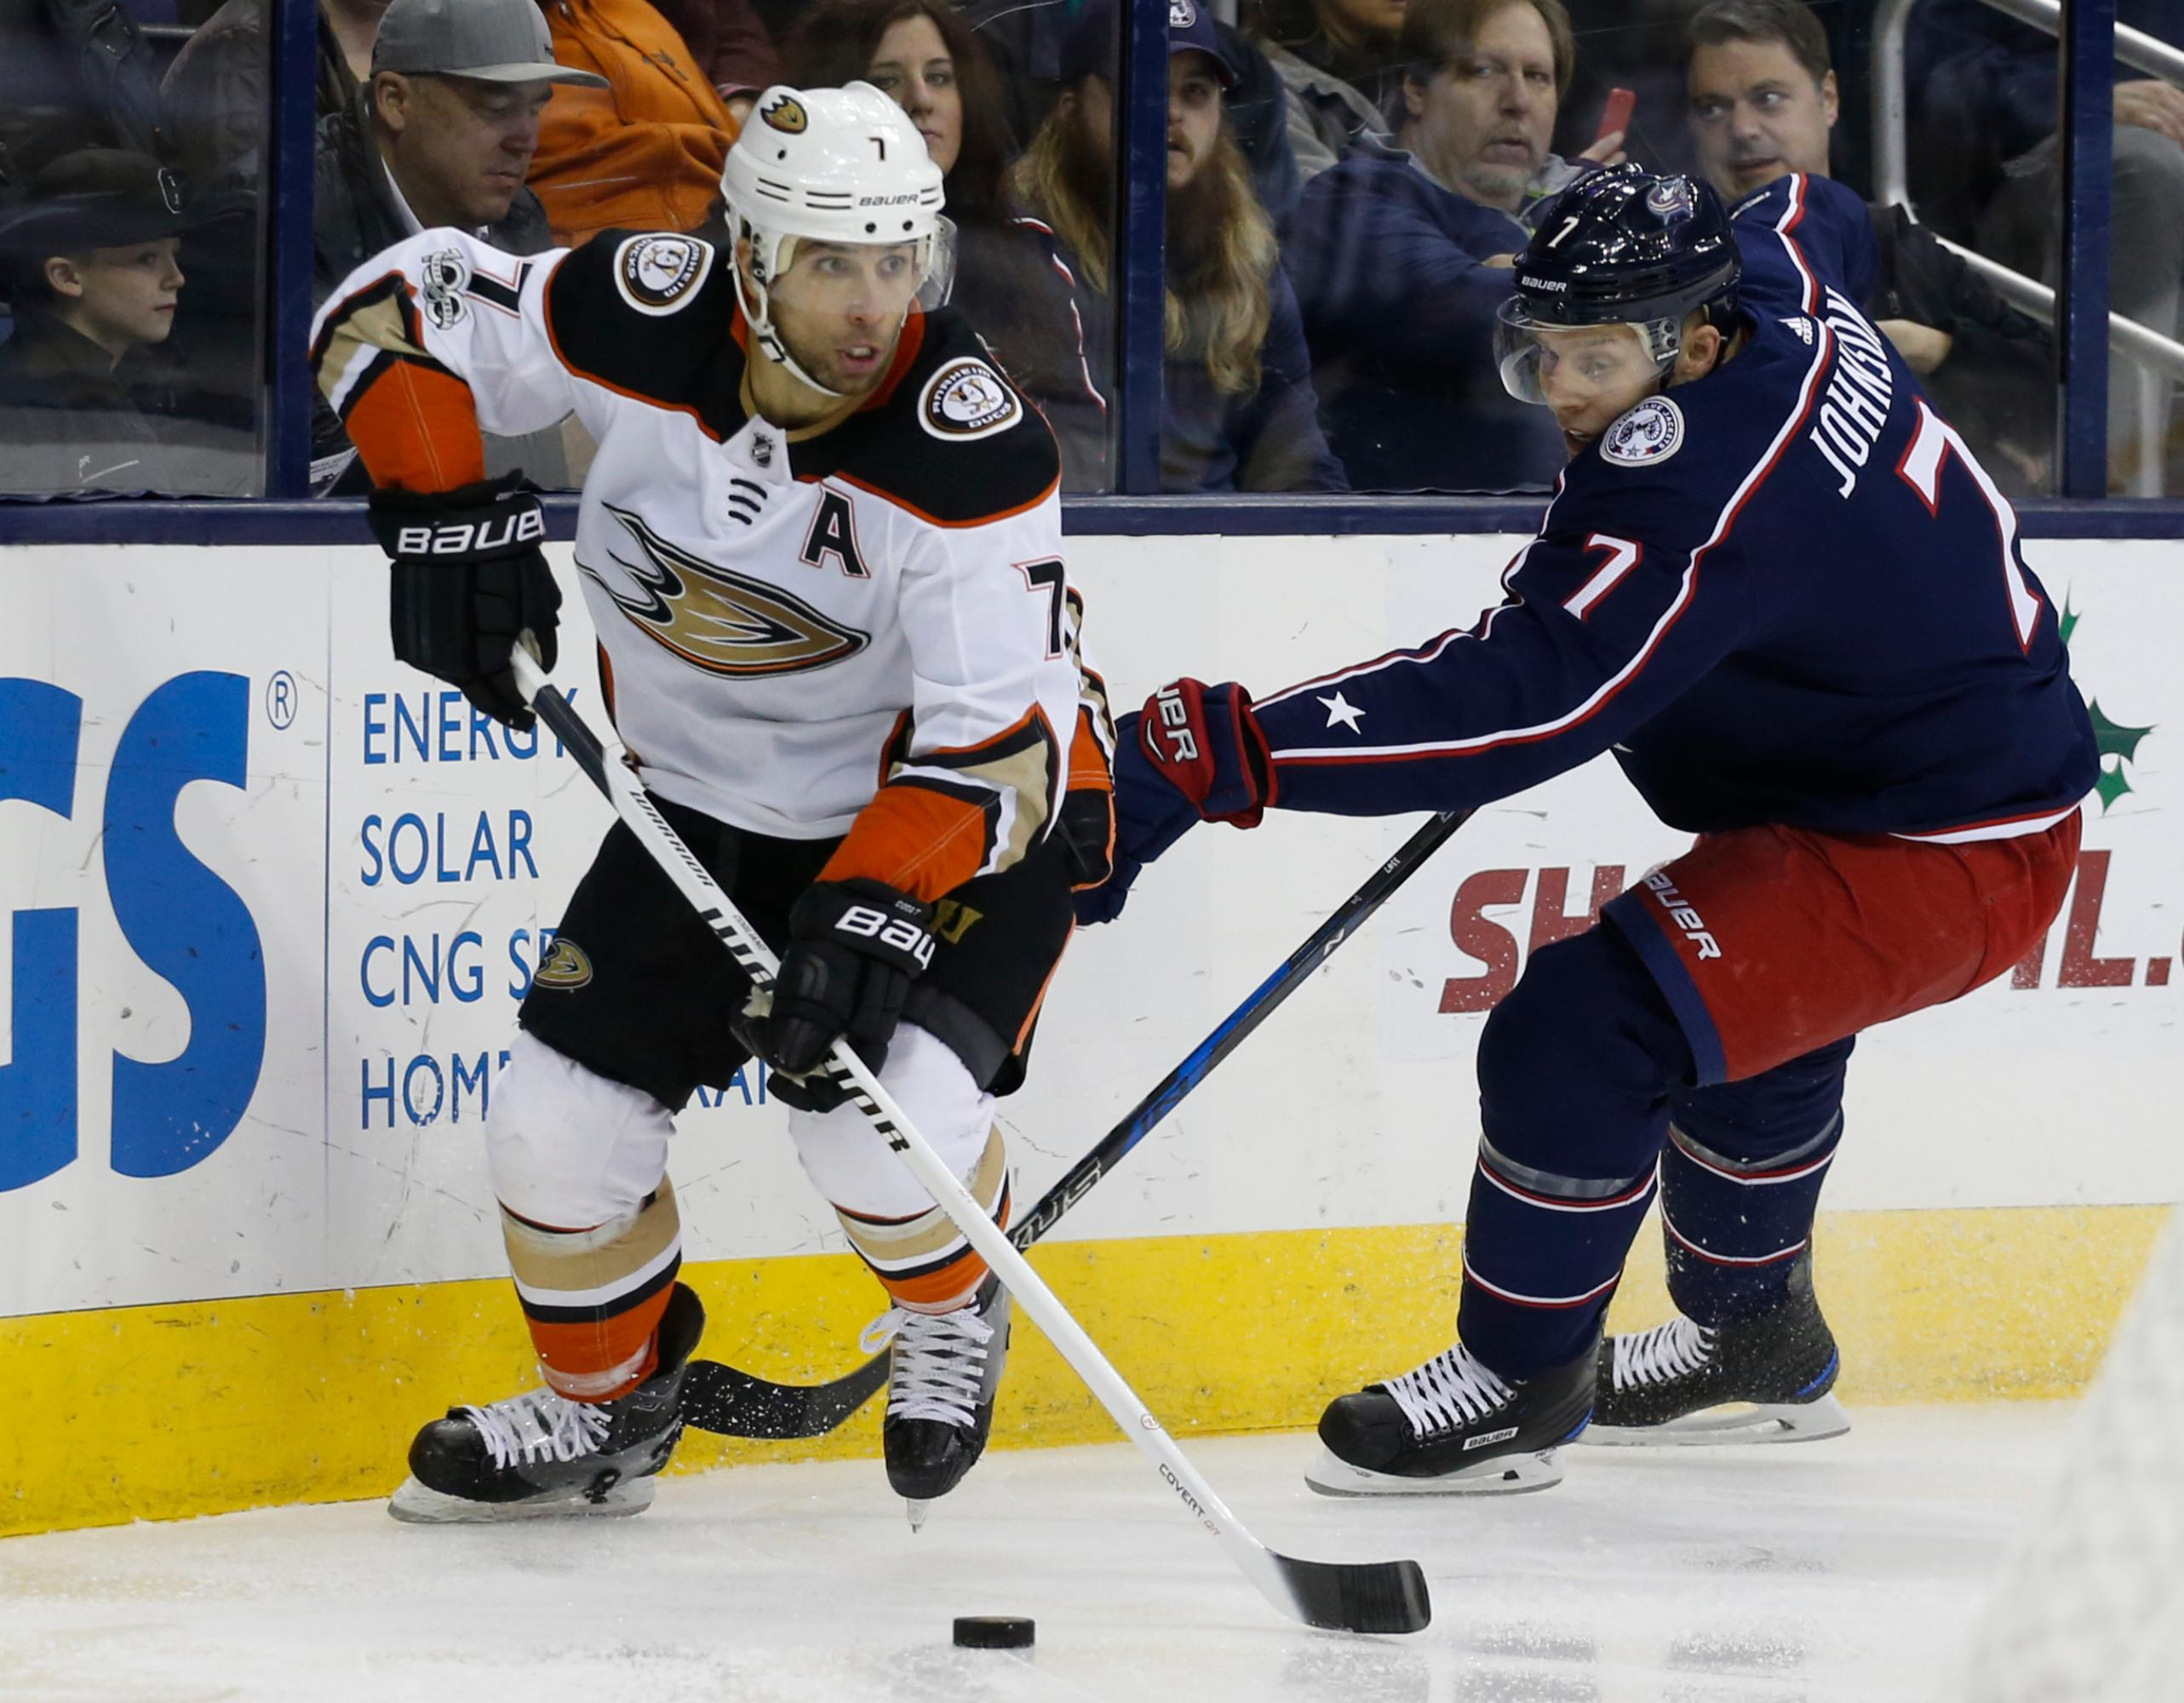 Anaheim Ducks' Andrew Cogliano, left, looks for an open pass as Columbus Blue Jackets' Jack Johnson defends during the first period of an NHL hockey game Friday, Dec. 1, 2017, in Columbus, Ohio. (AP Photo/Jay LaPrete)